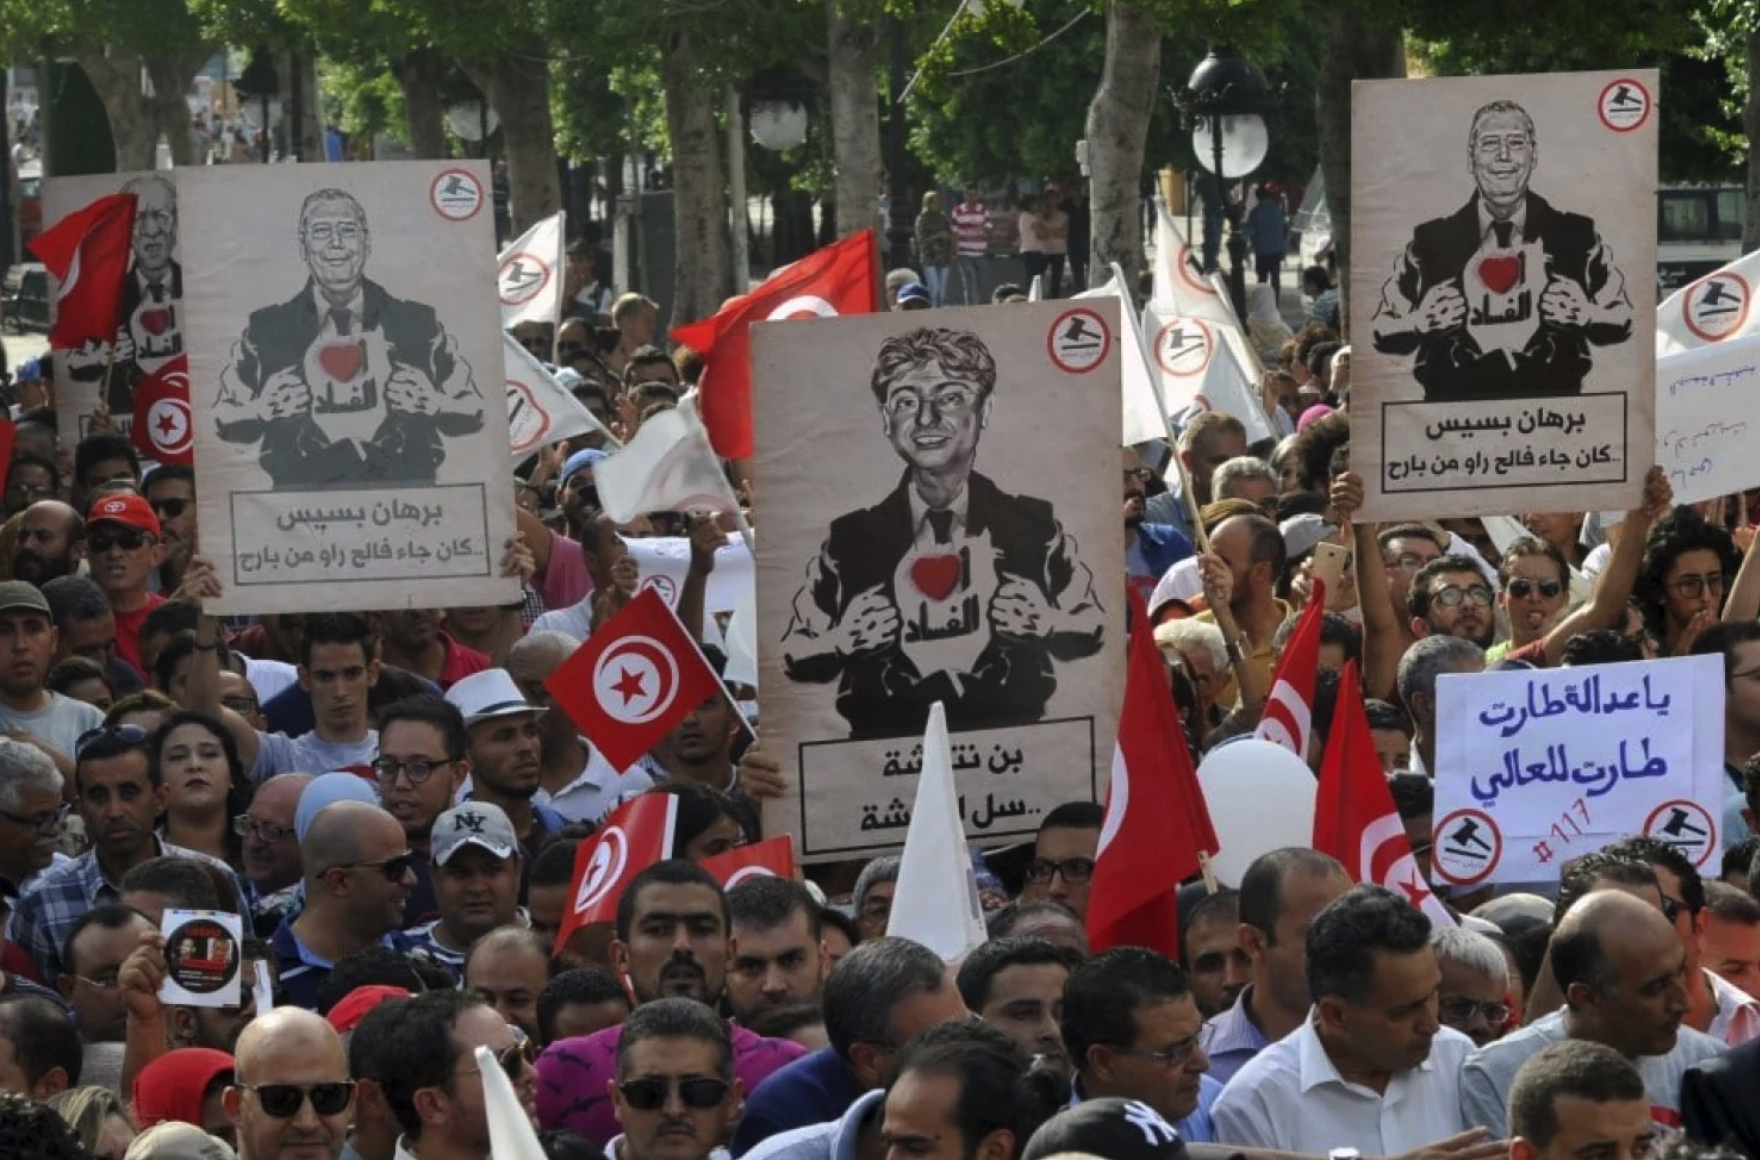 Ghribi: Don't Fall for the Tunisian President's Fake Feminism